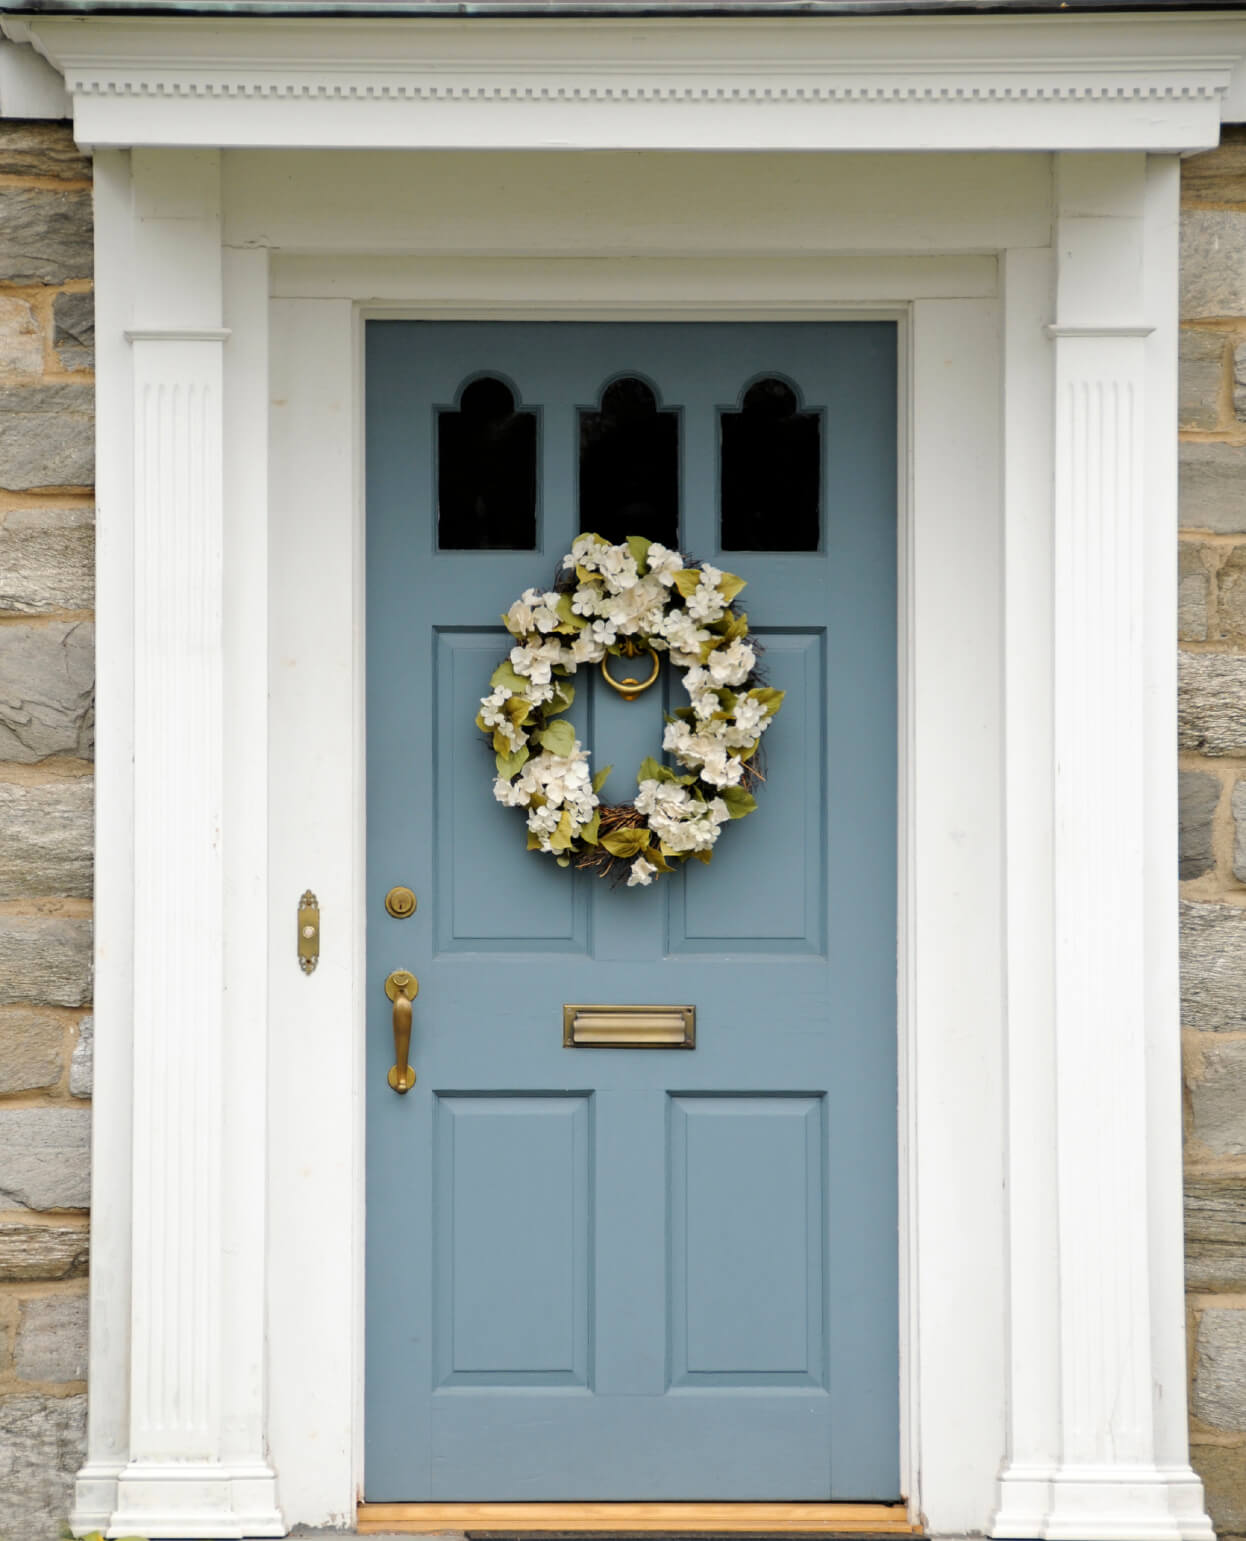 This house has stone front exterior. It has a light teal blue colored front door which has a series of glass panels. The front door has a brass lock, door handle, mail slot, and door knocker. Hanging above the brass door knocker is a wreath with white flowers. The front door also has a white door casing with a brass plated doorbell.